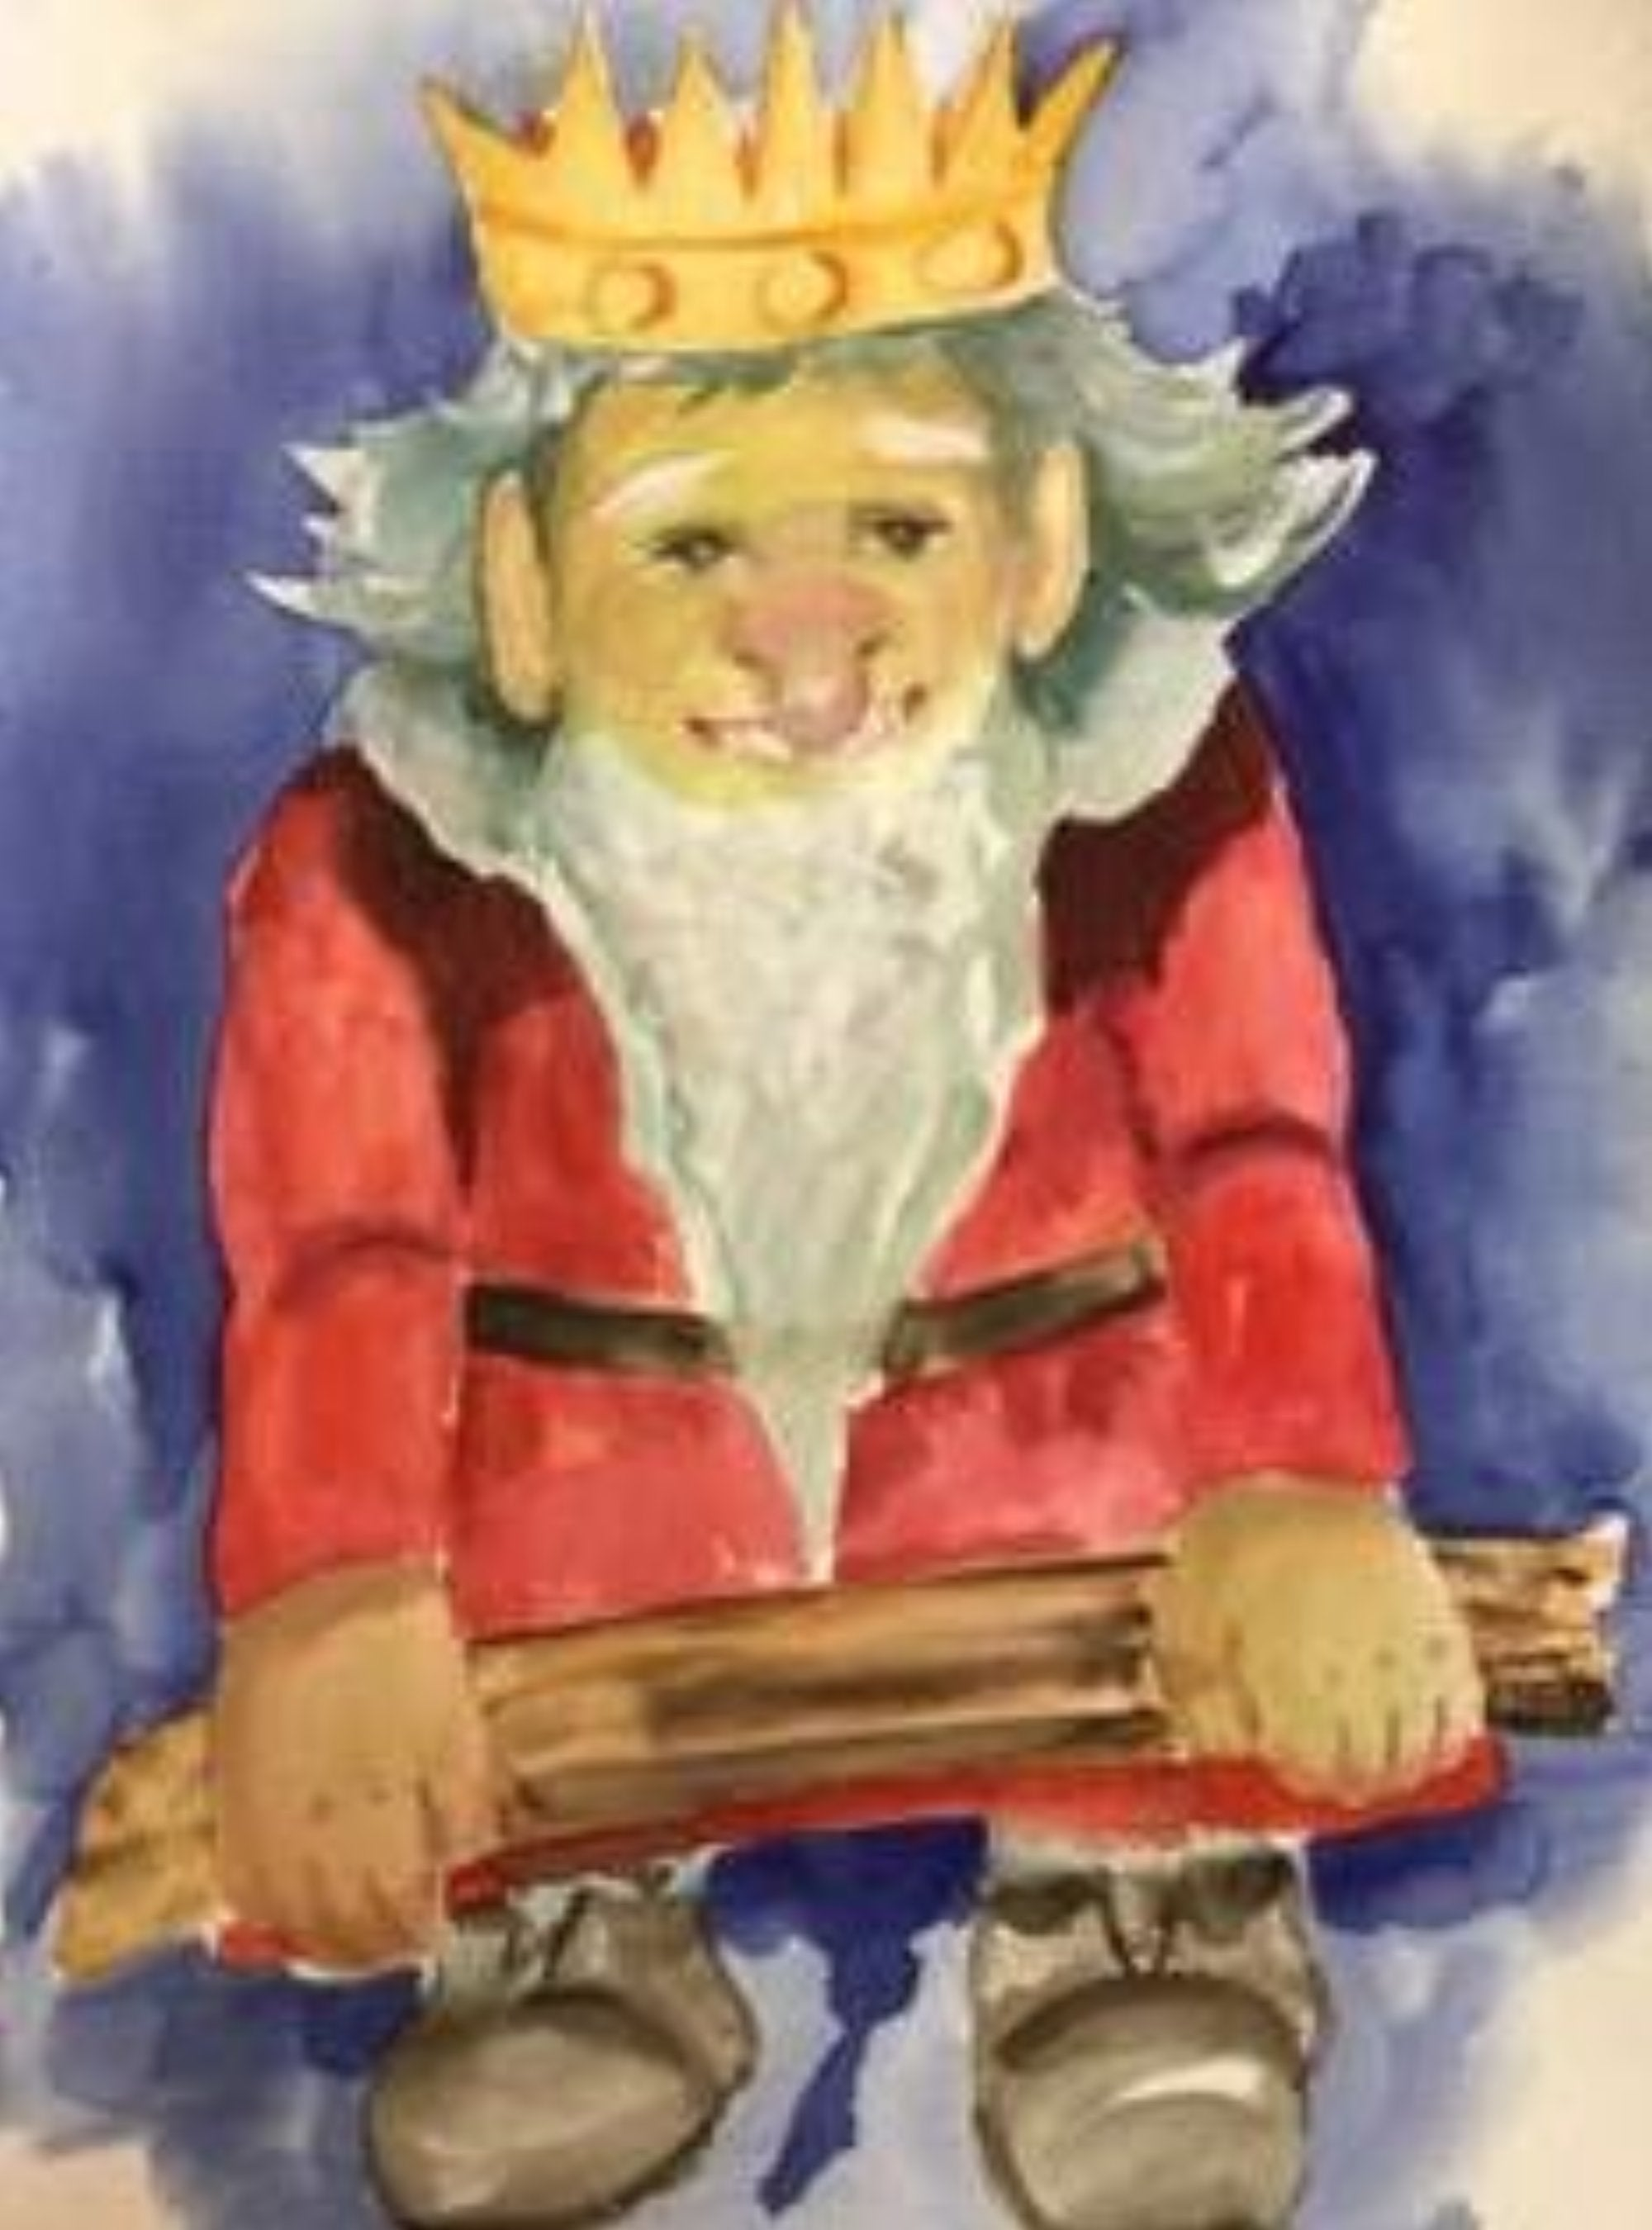 #1 Original - Gnome King Cunibert the 1.st (King Cunibert the Ist)